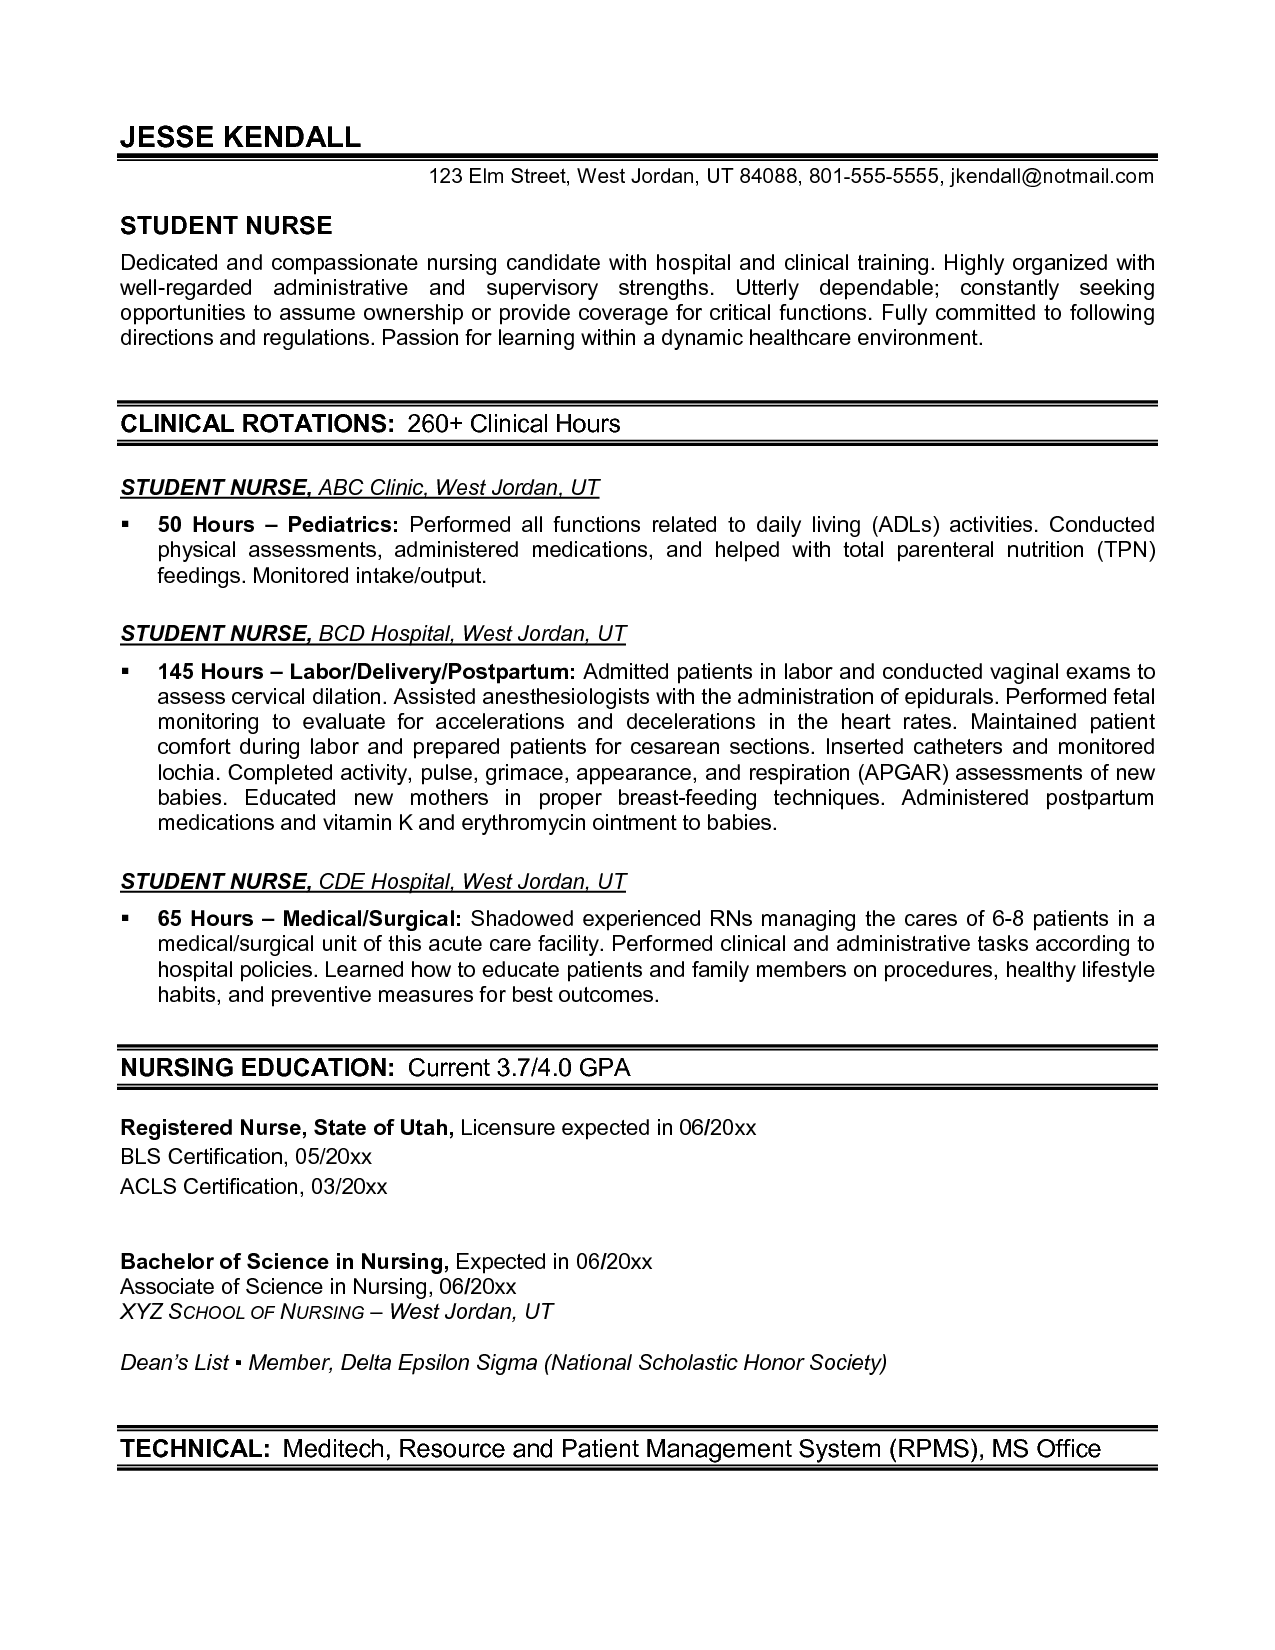 Resume Template Nursing Student Nurse Lpn Software